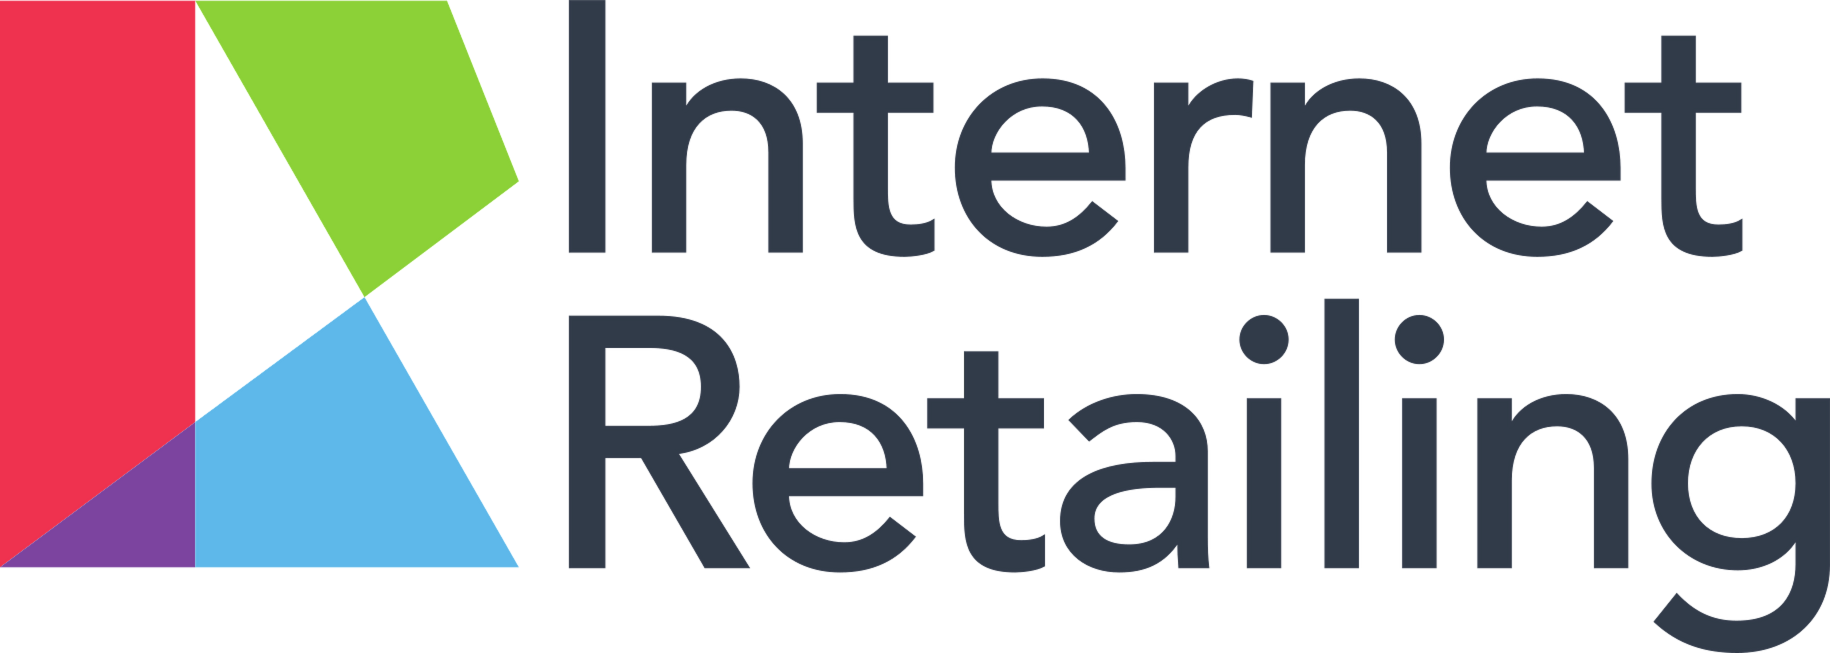 Conversant and CJ Affiliate in the news   Conversant